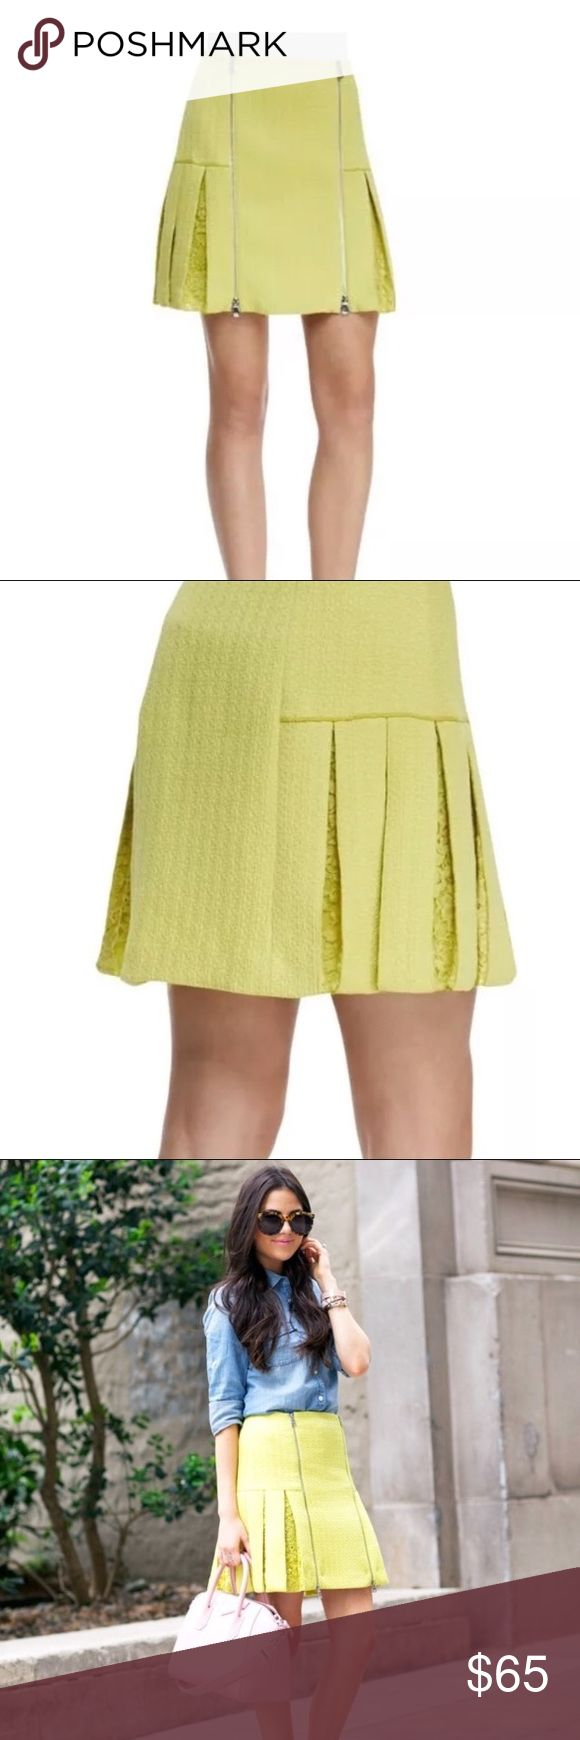 """Rebecca Taylor Pleated Mini Skirt in Lime Green Rebecca Taylor Pleated Mini Skirt in Lime Green Lime green Rebecca Taylor pleated mini skirt with guipure lace accents and dual exposed two-way zip closure at front. Fabric: 74% Polyester, 25% Cotton, 1% Spandex; Combo 1 71% Cotton, 26% Nylon, 3% Linen; Combo 2 100% Silk; Lining 100% Polyester Shell 74% Polyester, 25% Cotton, 1% Spandex Approximate: 13.5"""" Waist, 17"""" Length Gently used in overall good condition. Rebecca Taylor Skirts Mini"""